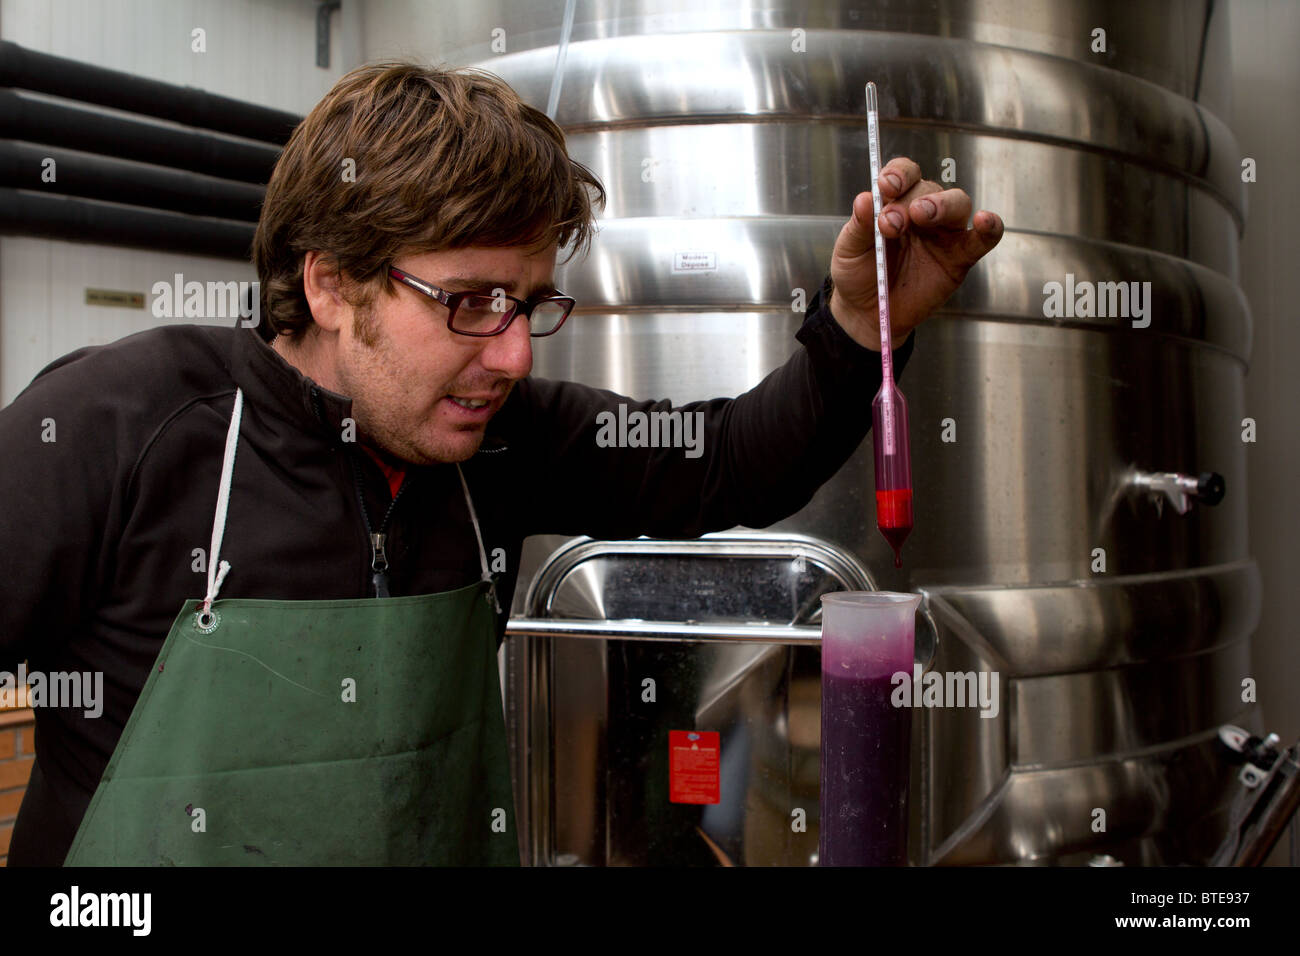 Man using a hydrometer to measure the specific gravity of red wine in a wine making factory in Spain - Stock Image